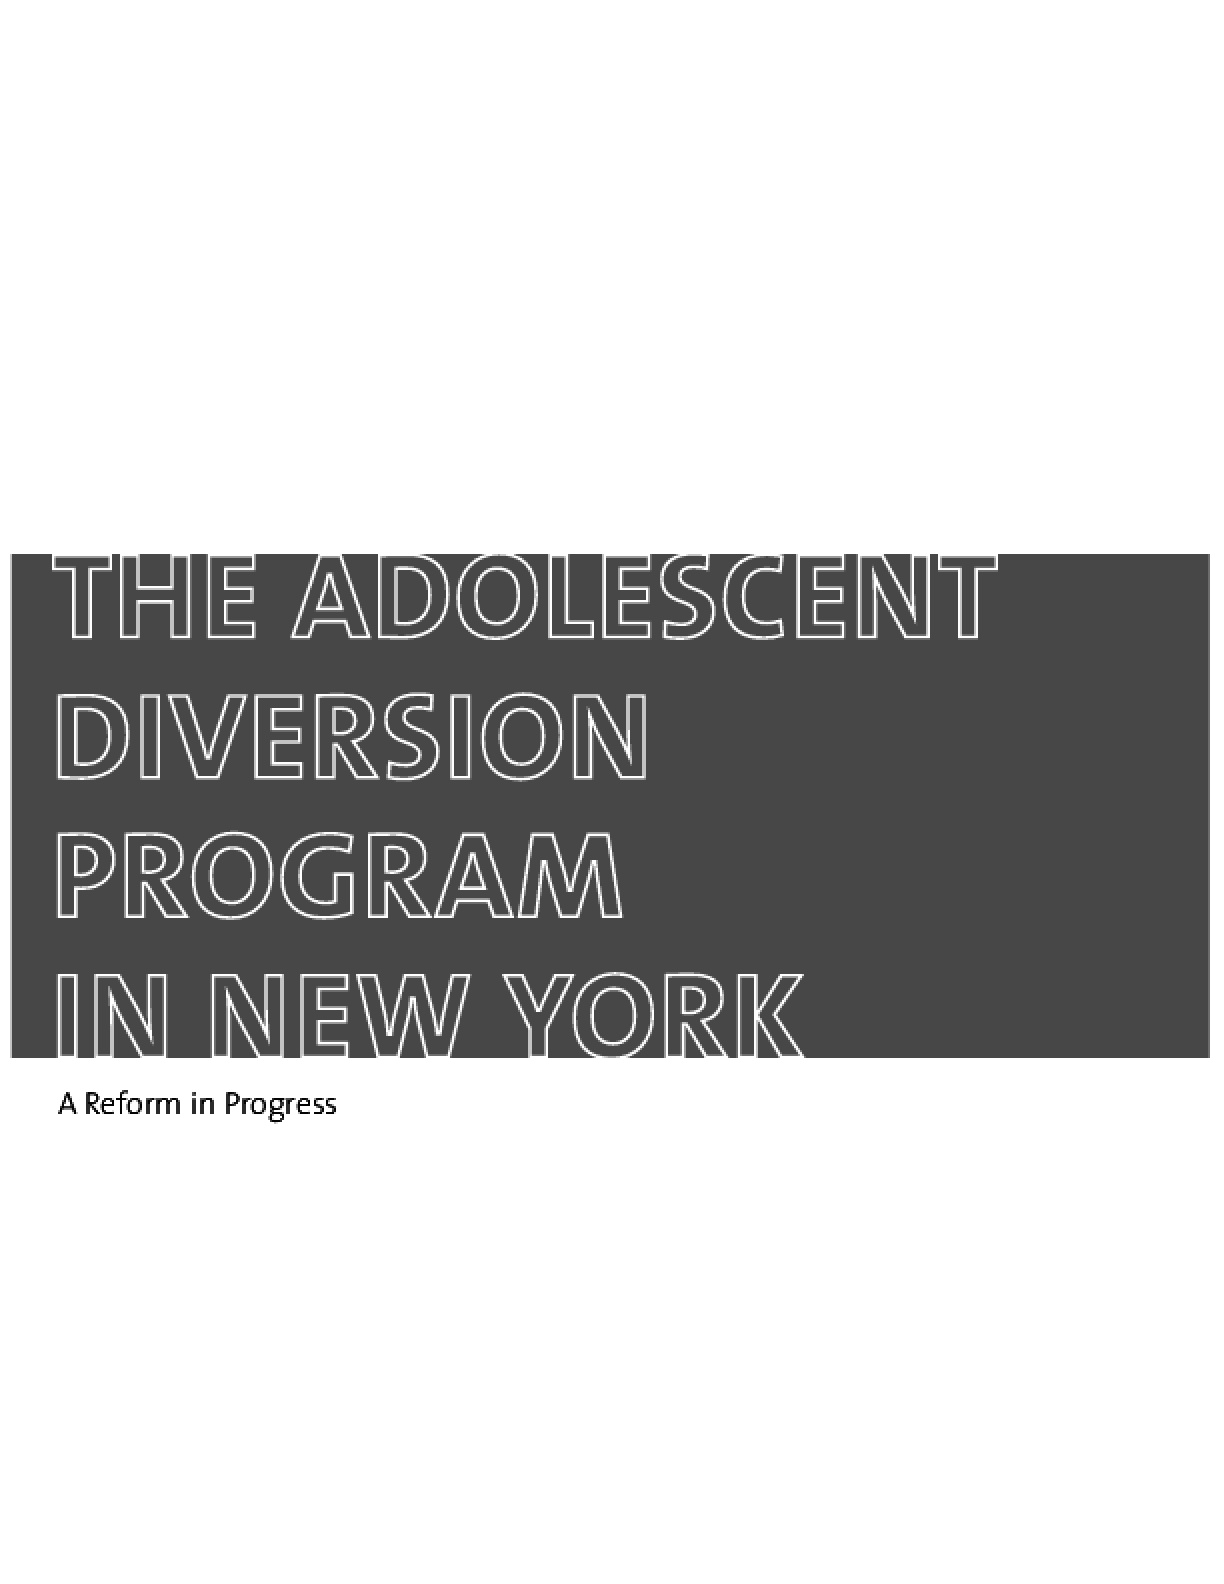 The Adolescent Diversion Program in New York: A Reform in Progress